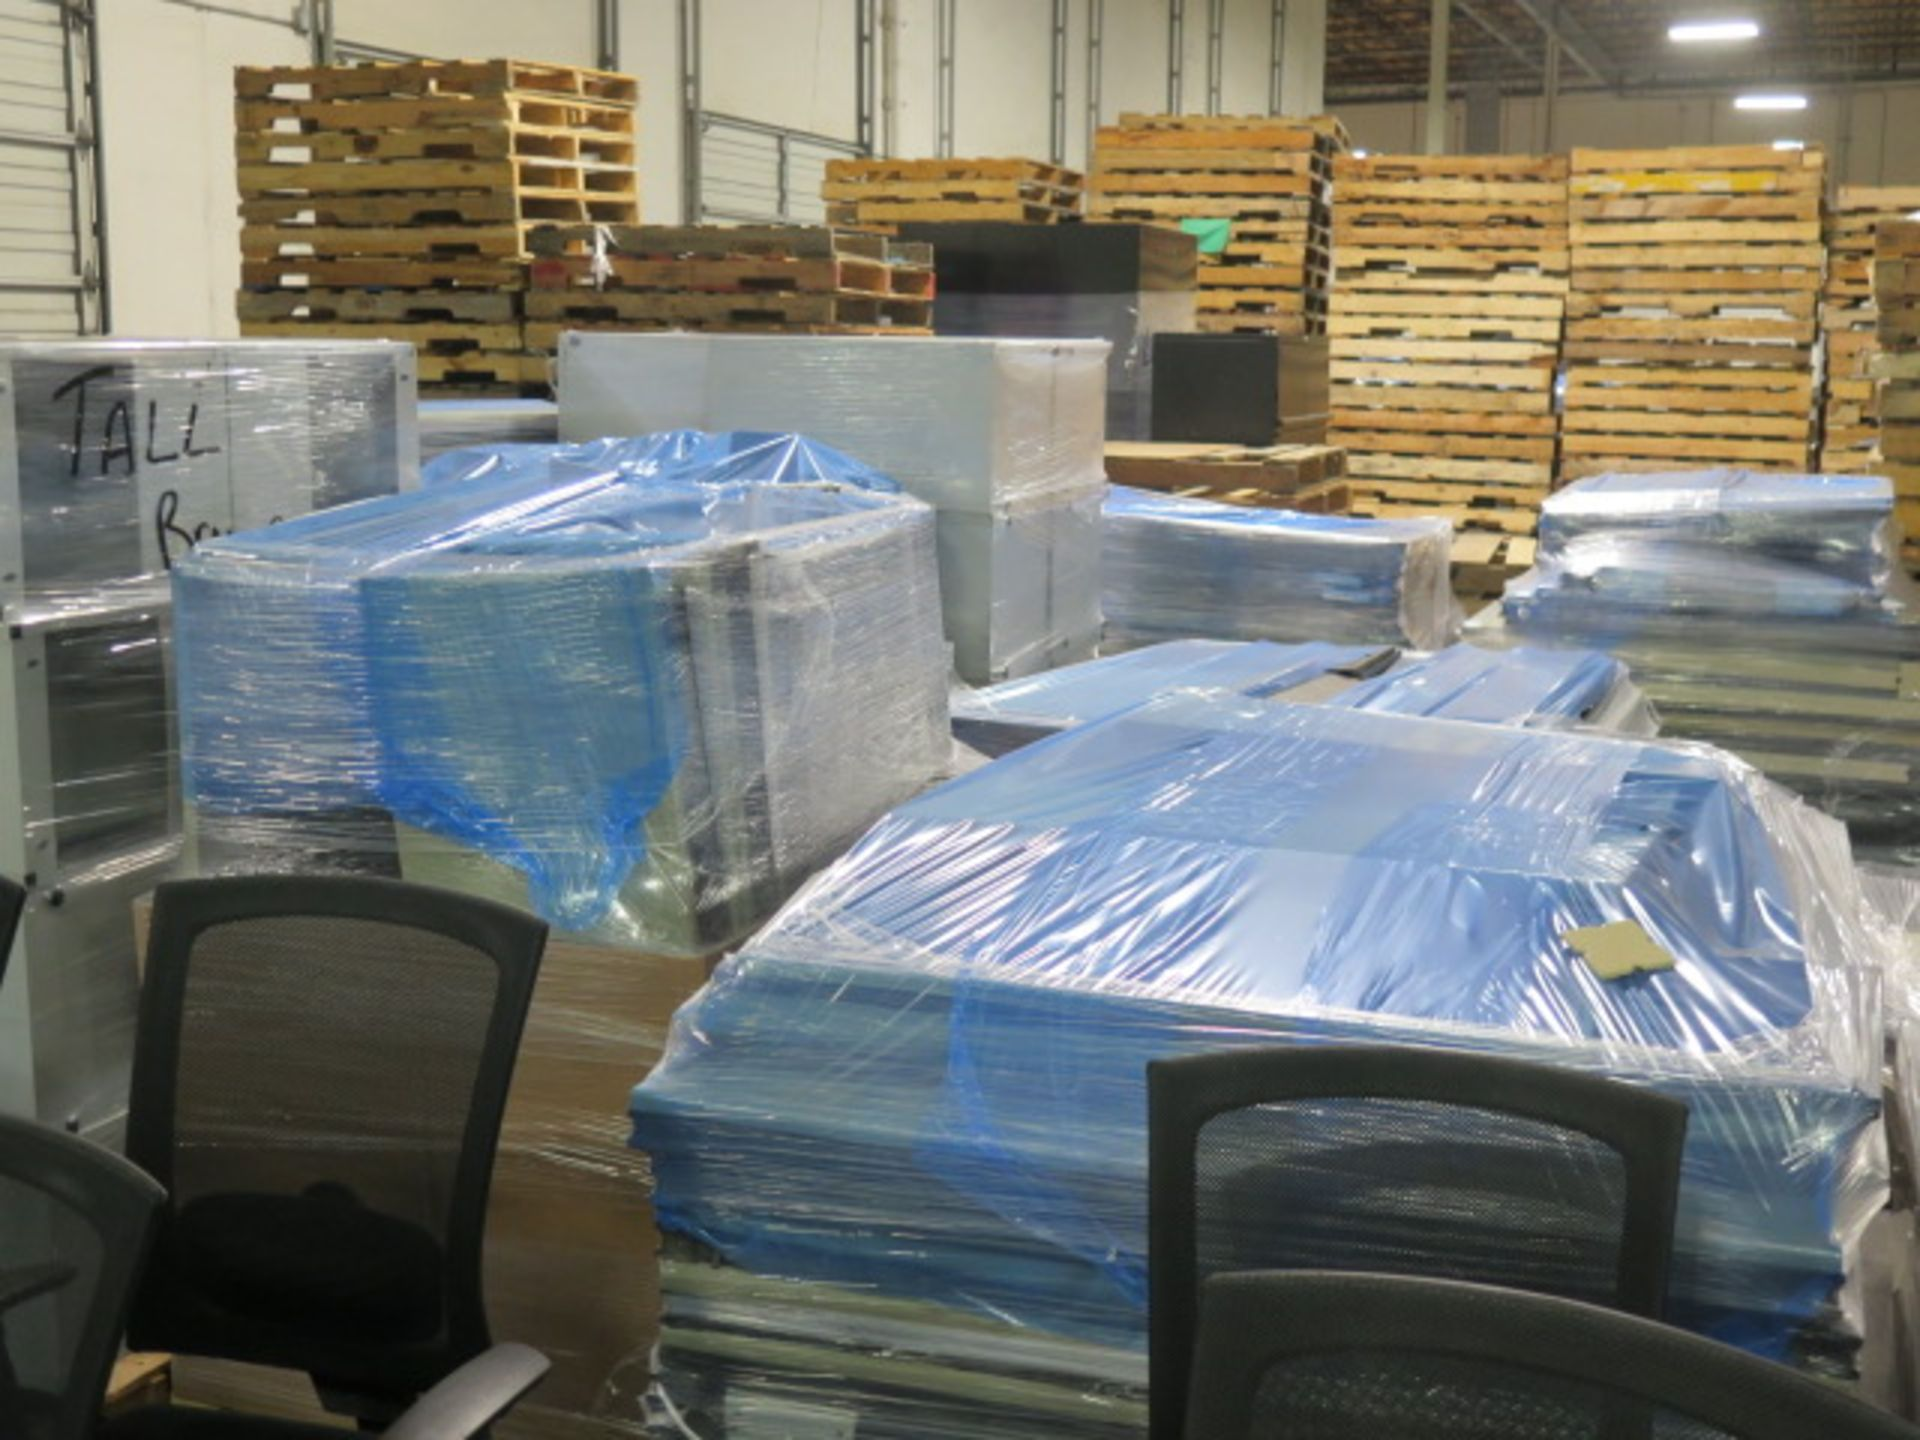 Large Quantity of Office Partitions, Desks, File Cabinets and Storage Cabinets (SOLD AS-IS - NO WARA - Image 24 of 24